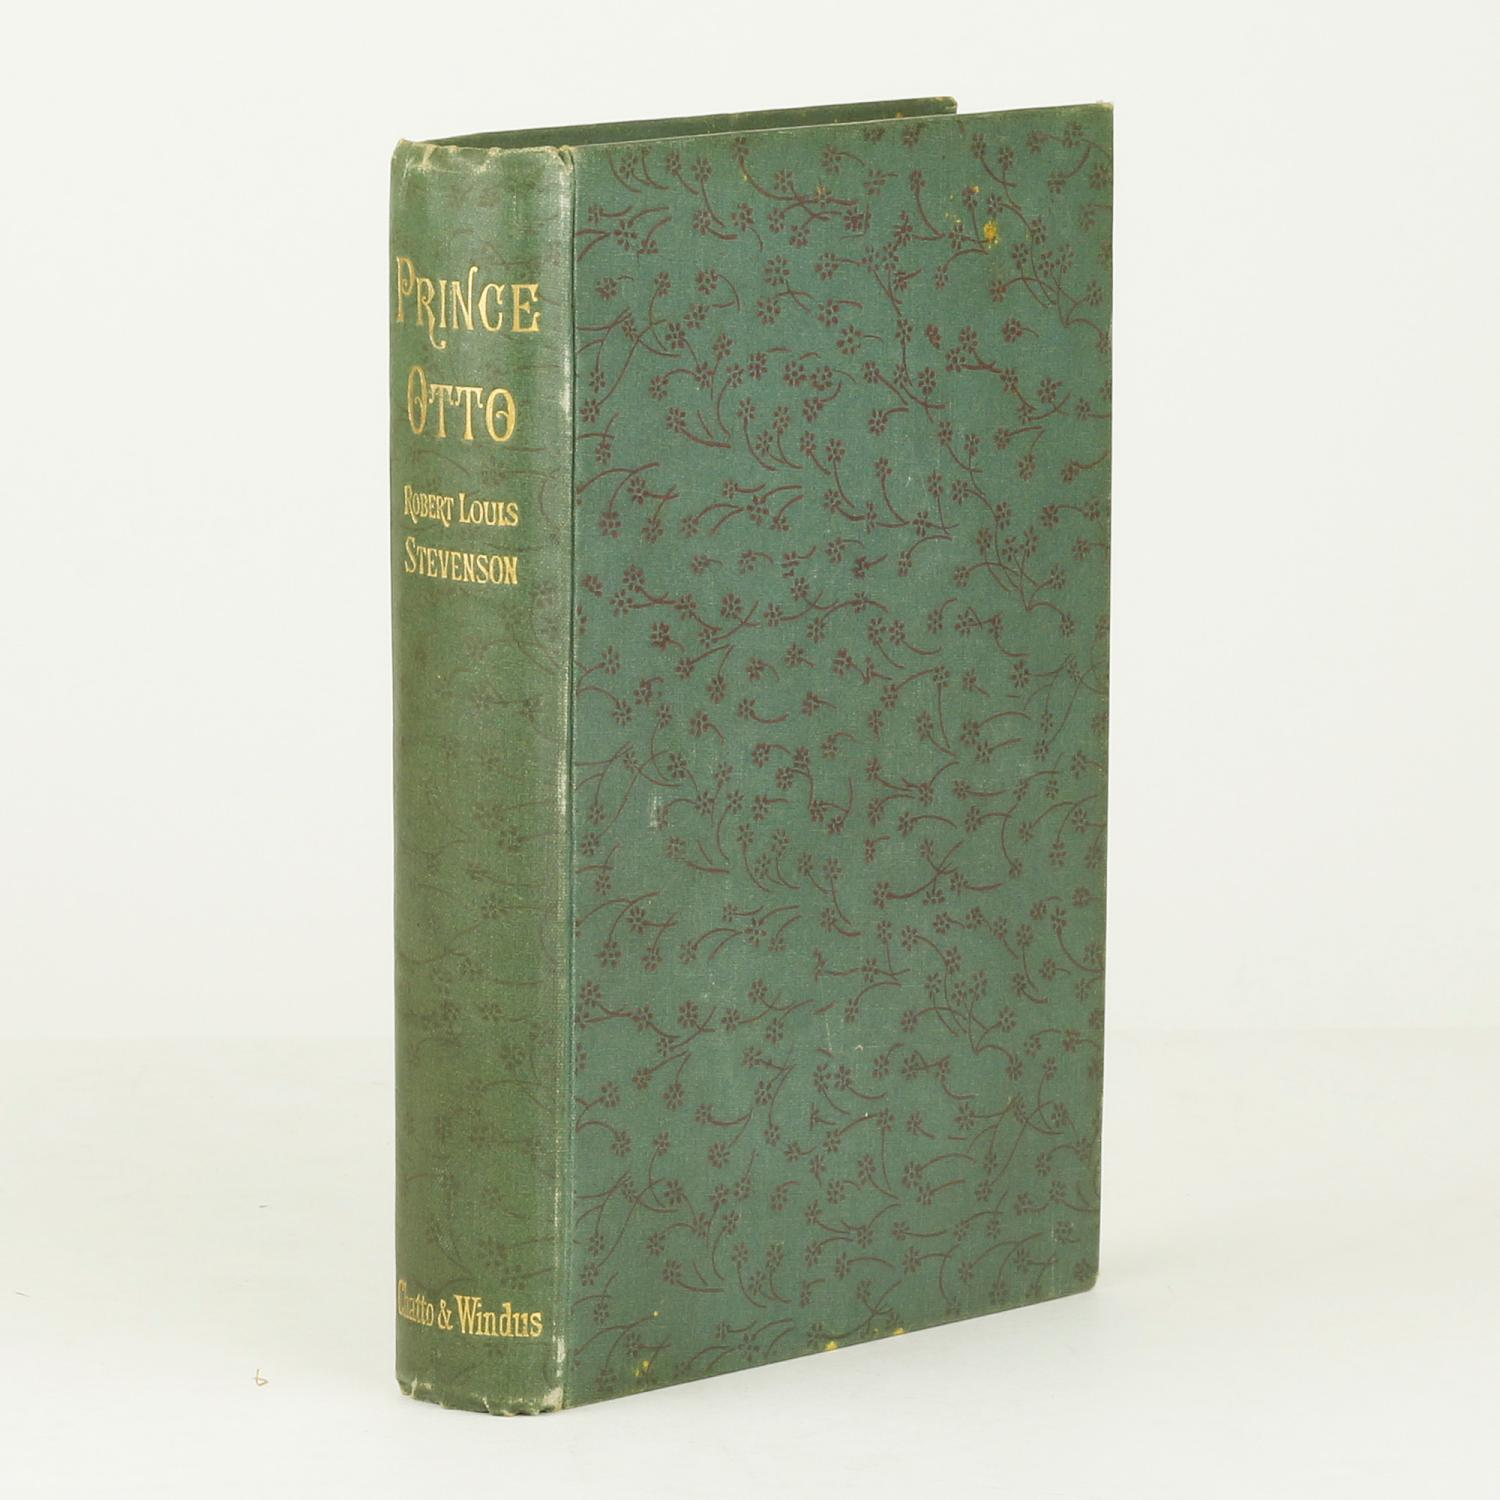 Prince Otto, 1st edition, Chatto & Windus, 1 Nov 1885 [https://pictures.abebooks.com]